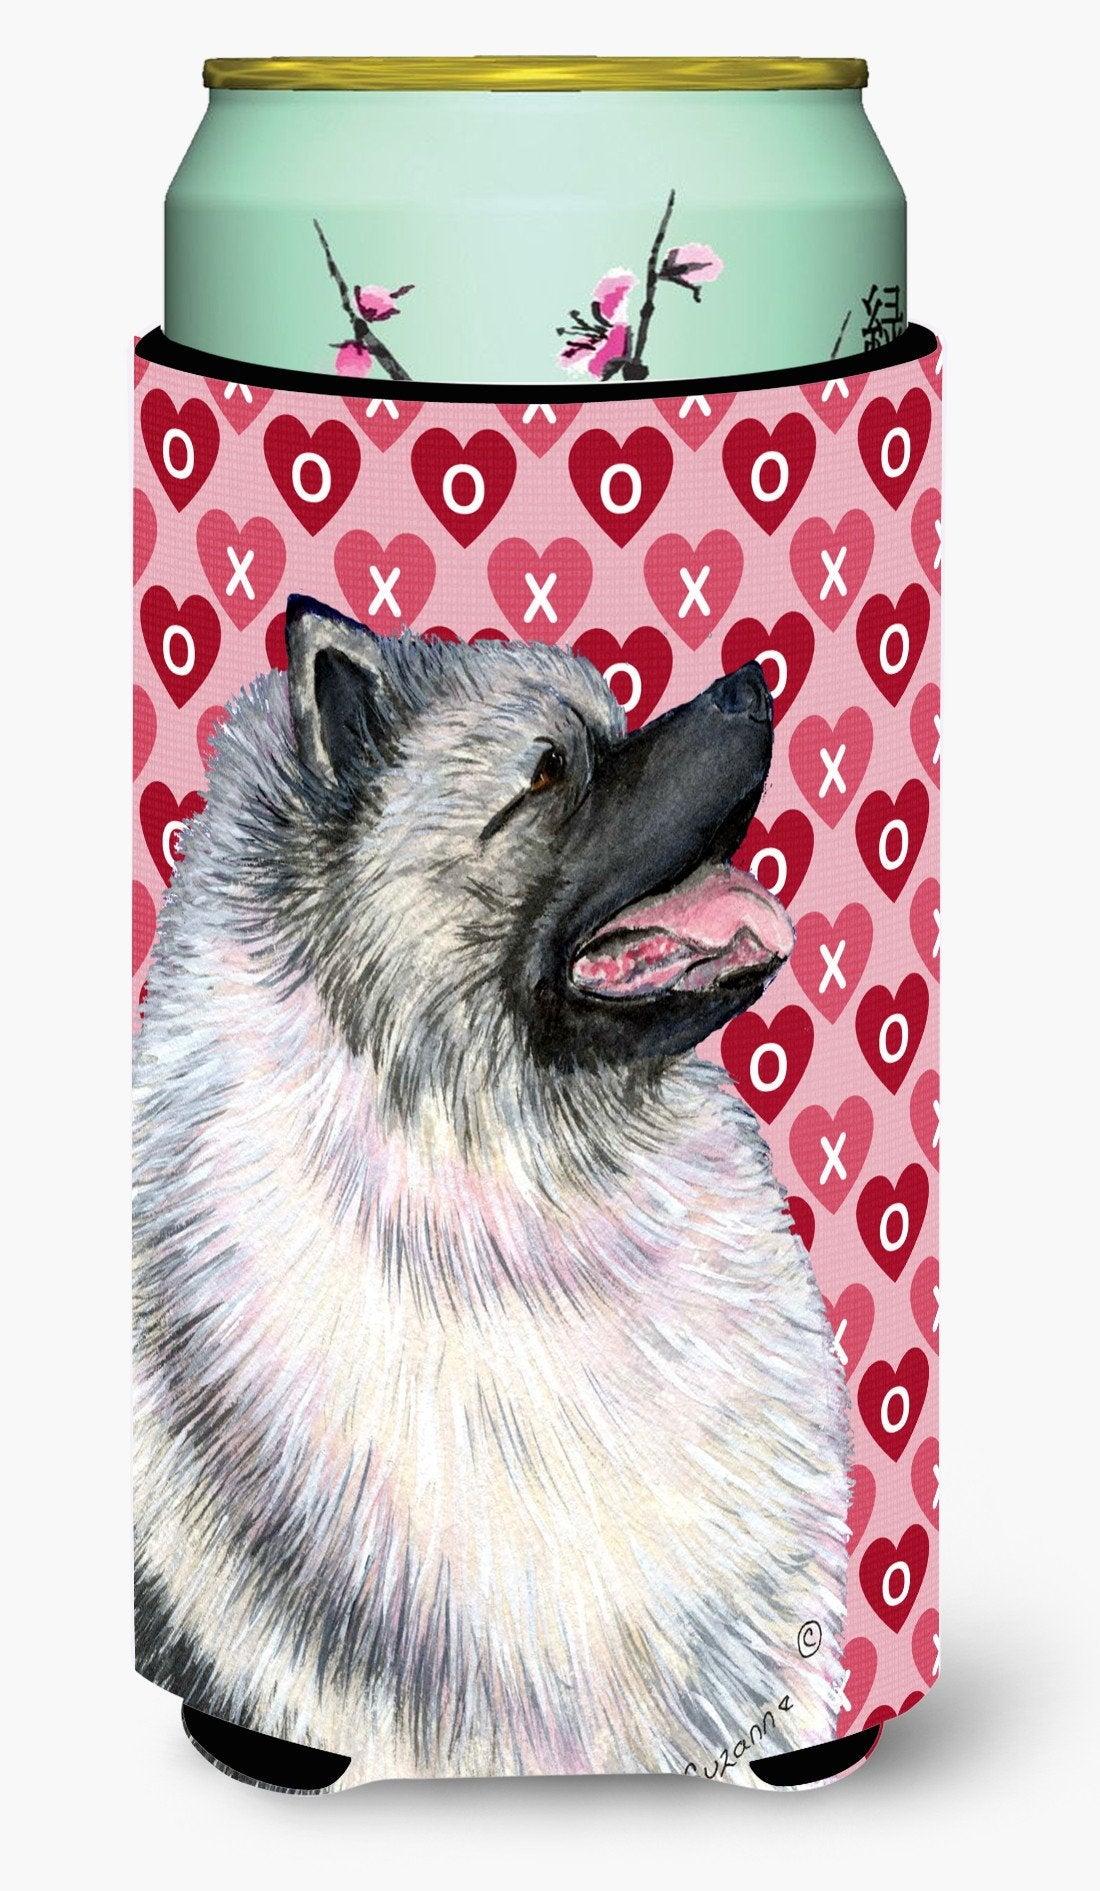 Keeshond Hearts Love and Valentine's Day Portrait  Tall Boy Beverage Insulator Beverage Insulator Hugger by Caroline's Treasures